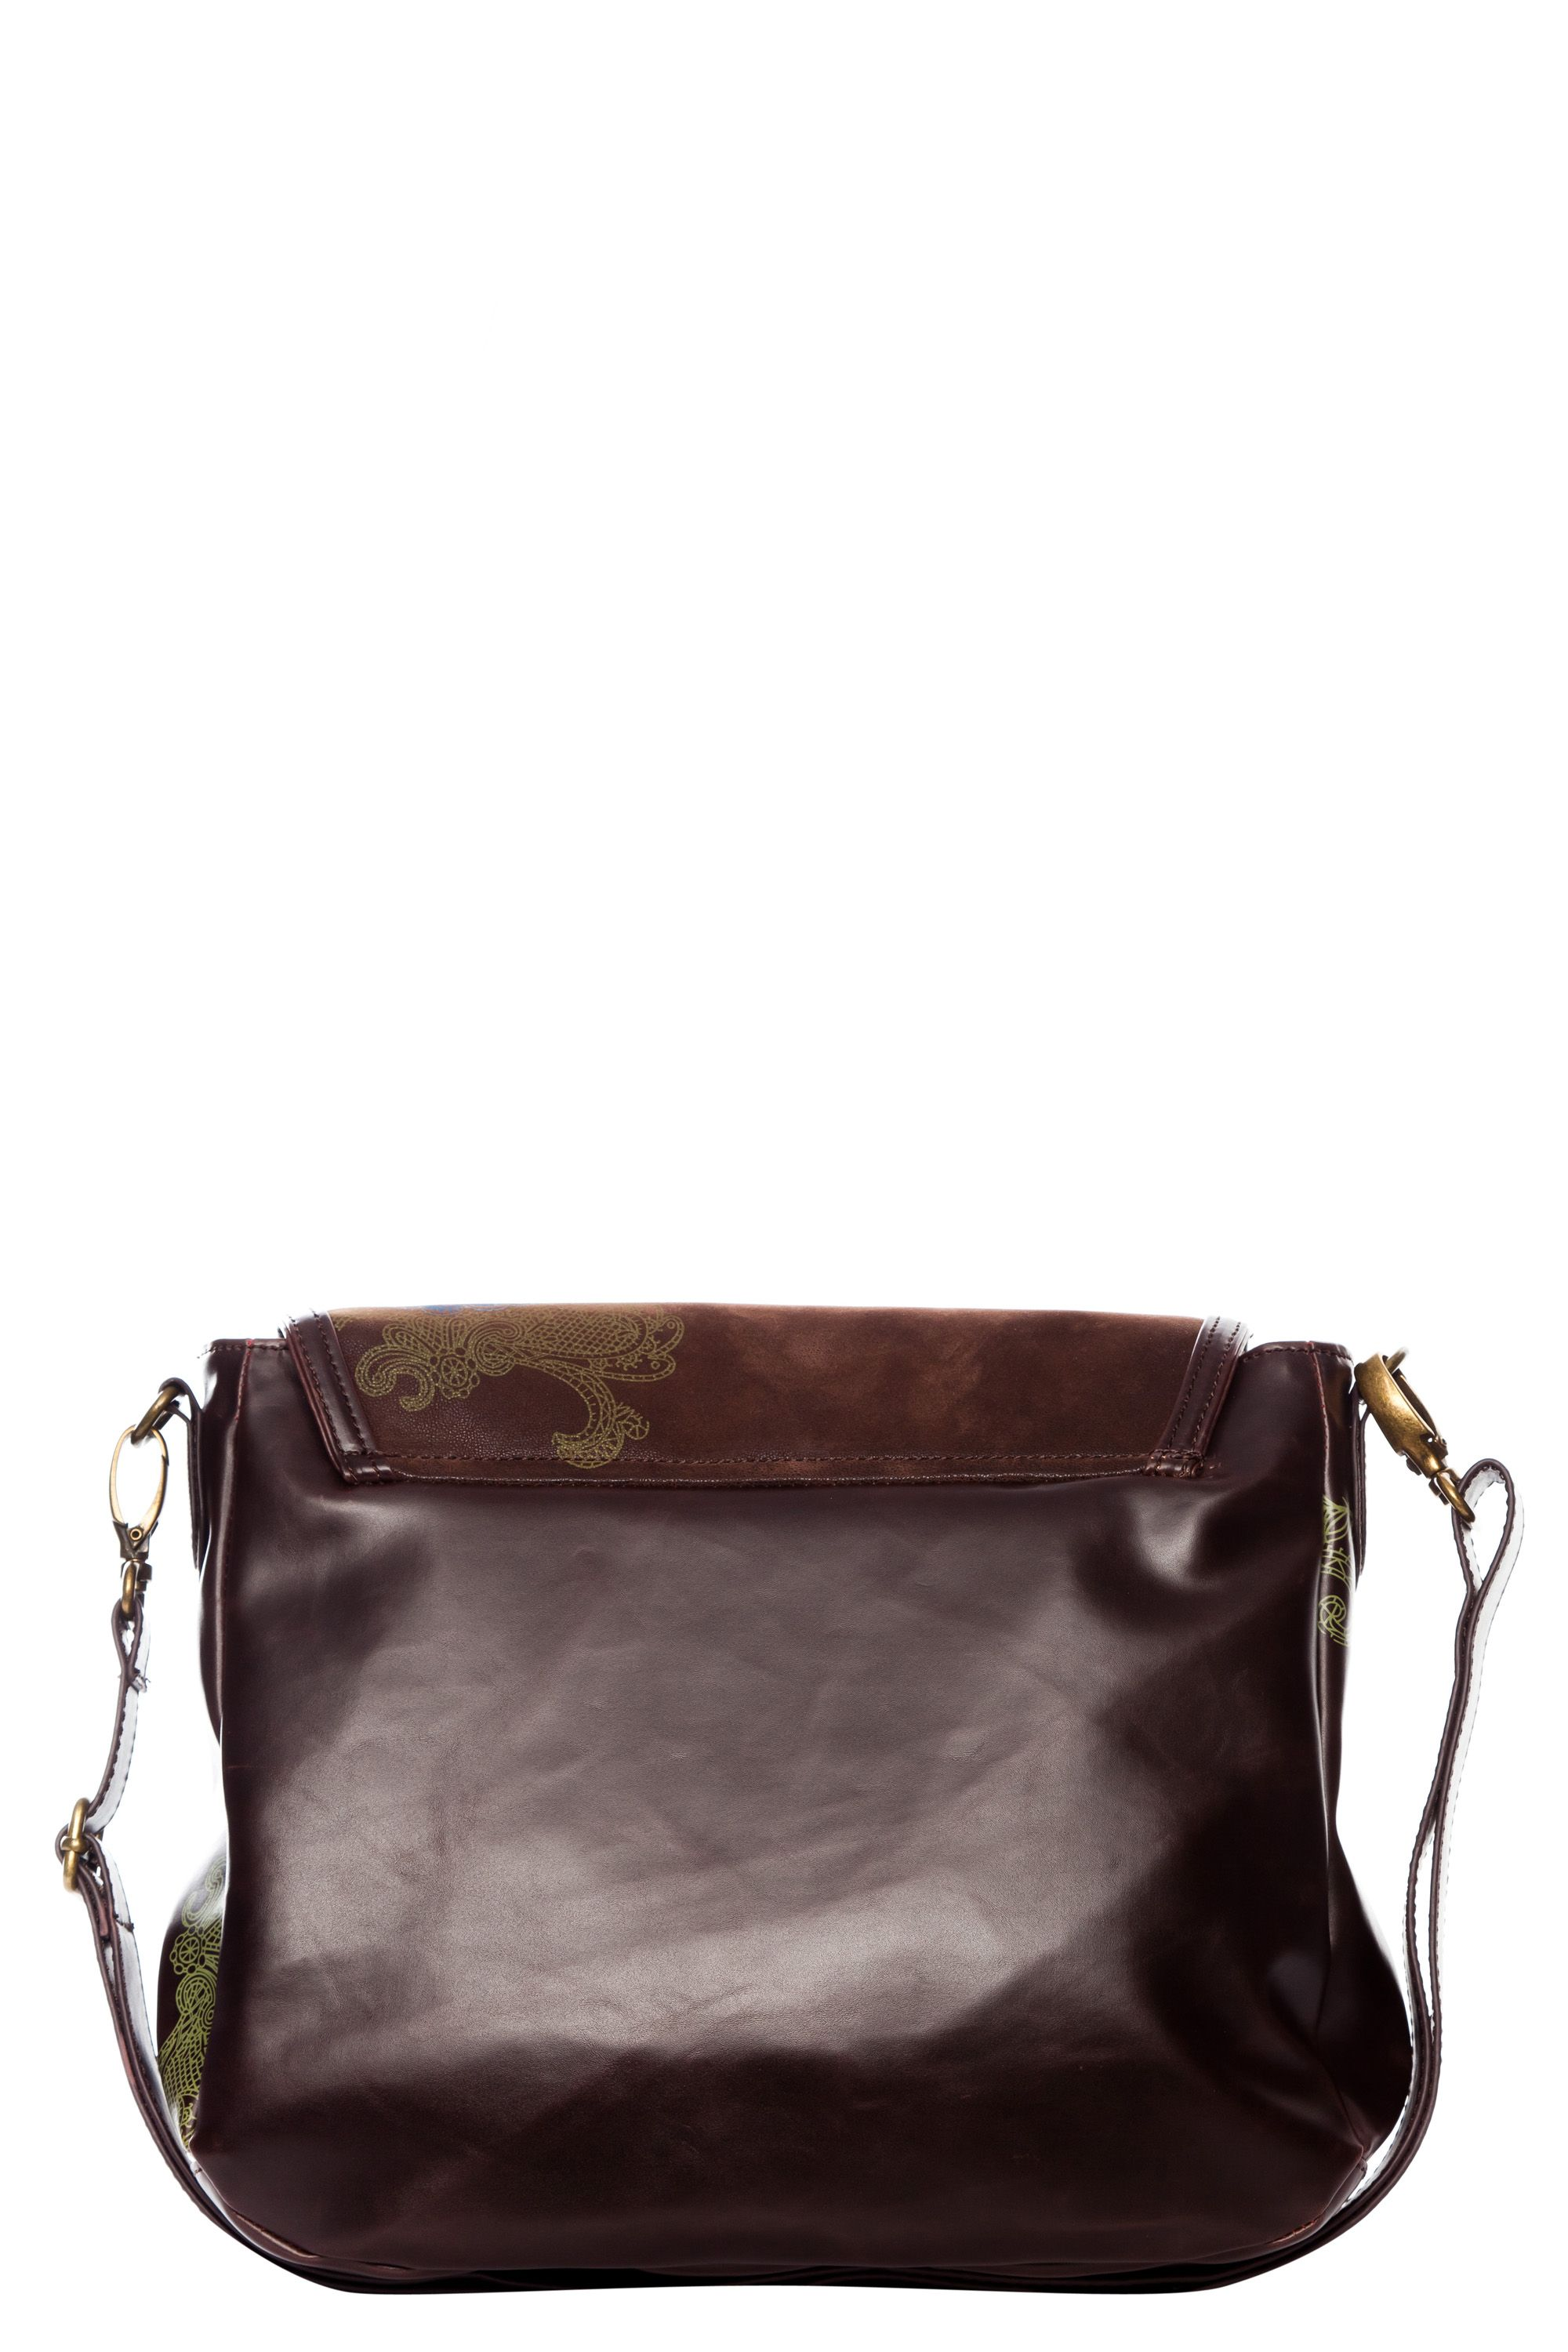 New luna crossbody bag